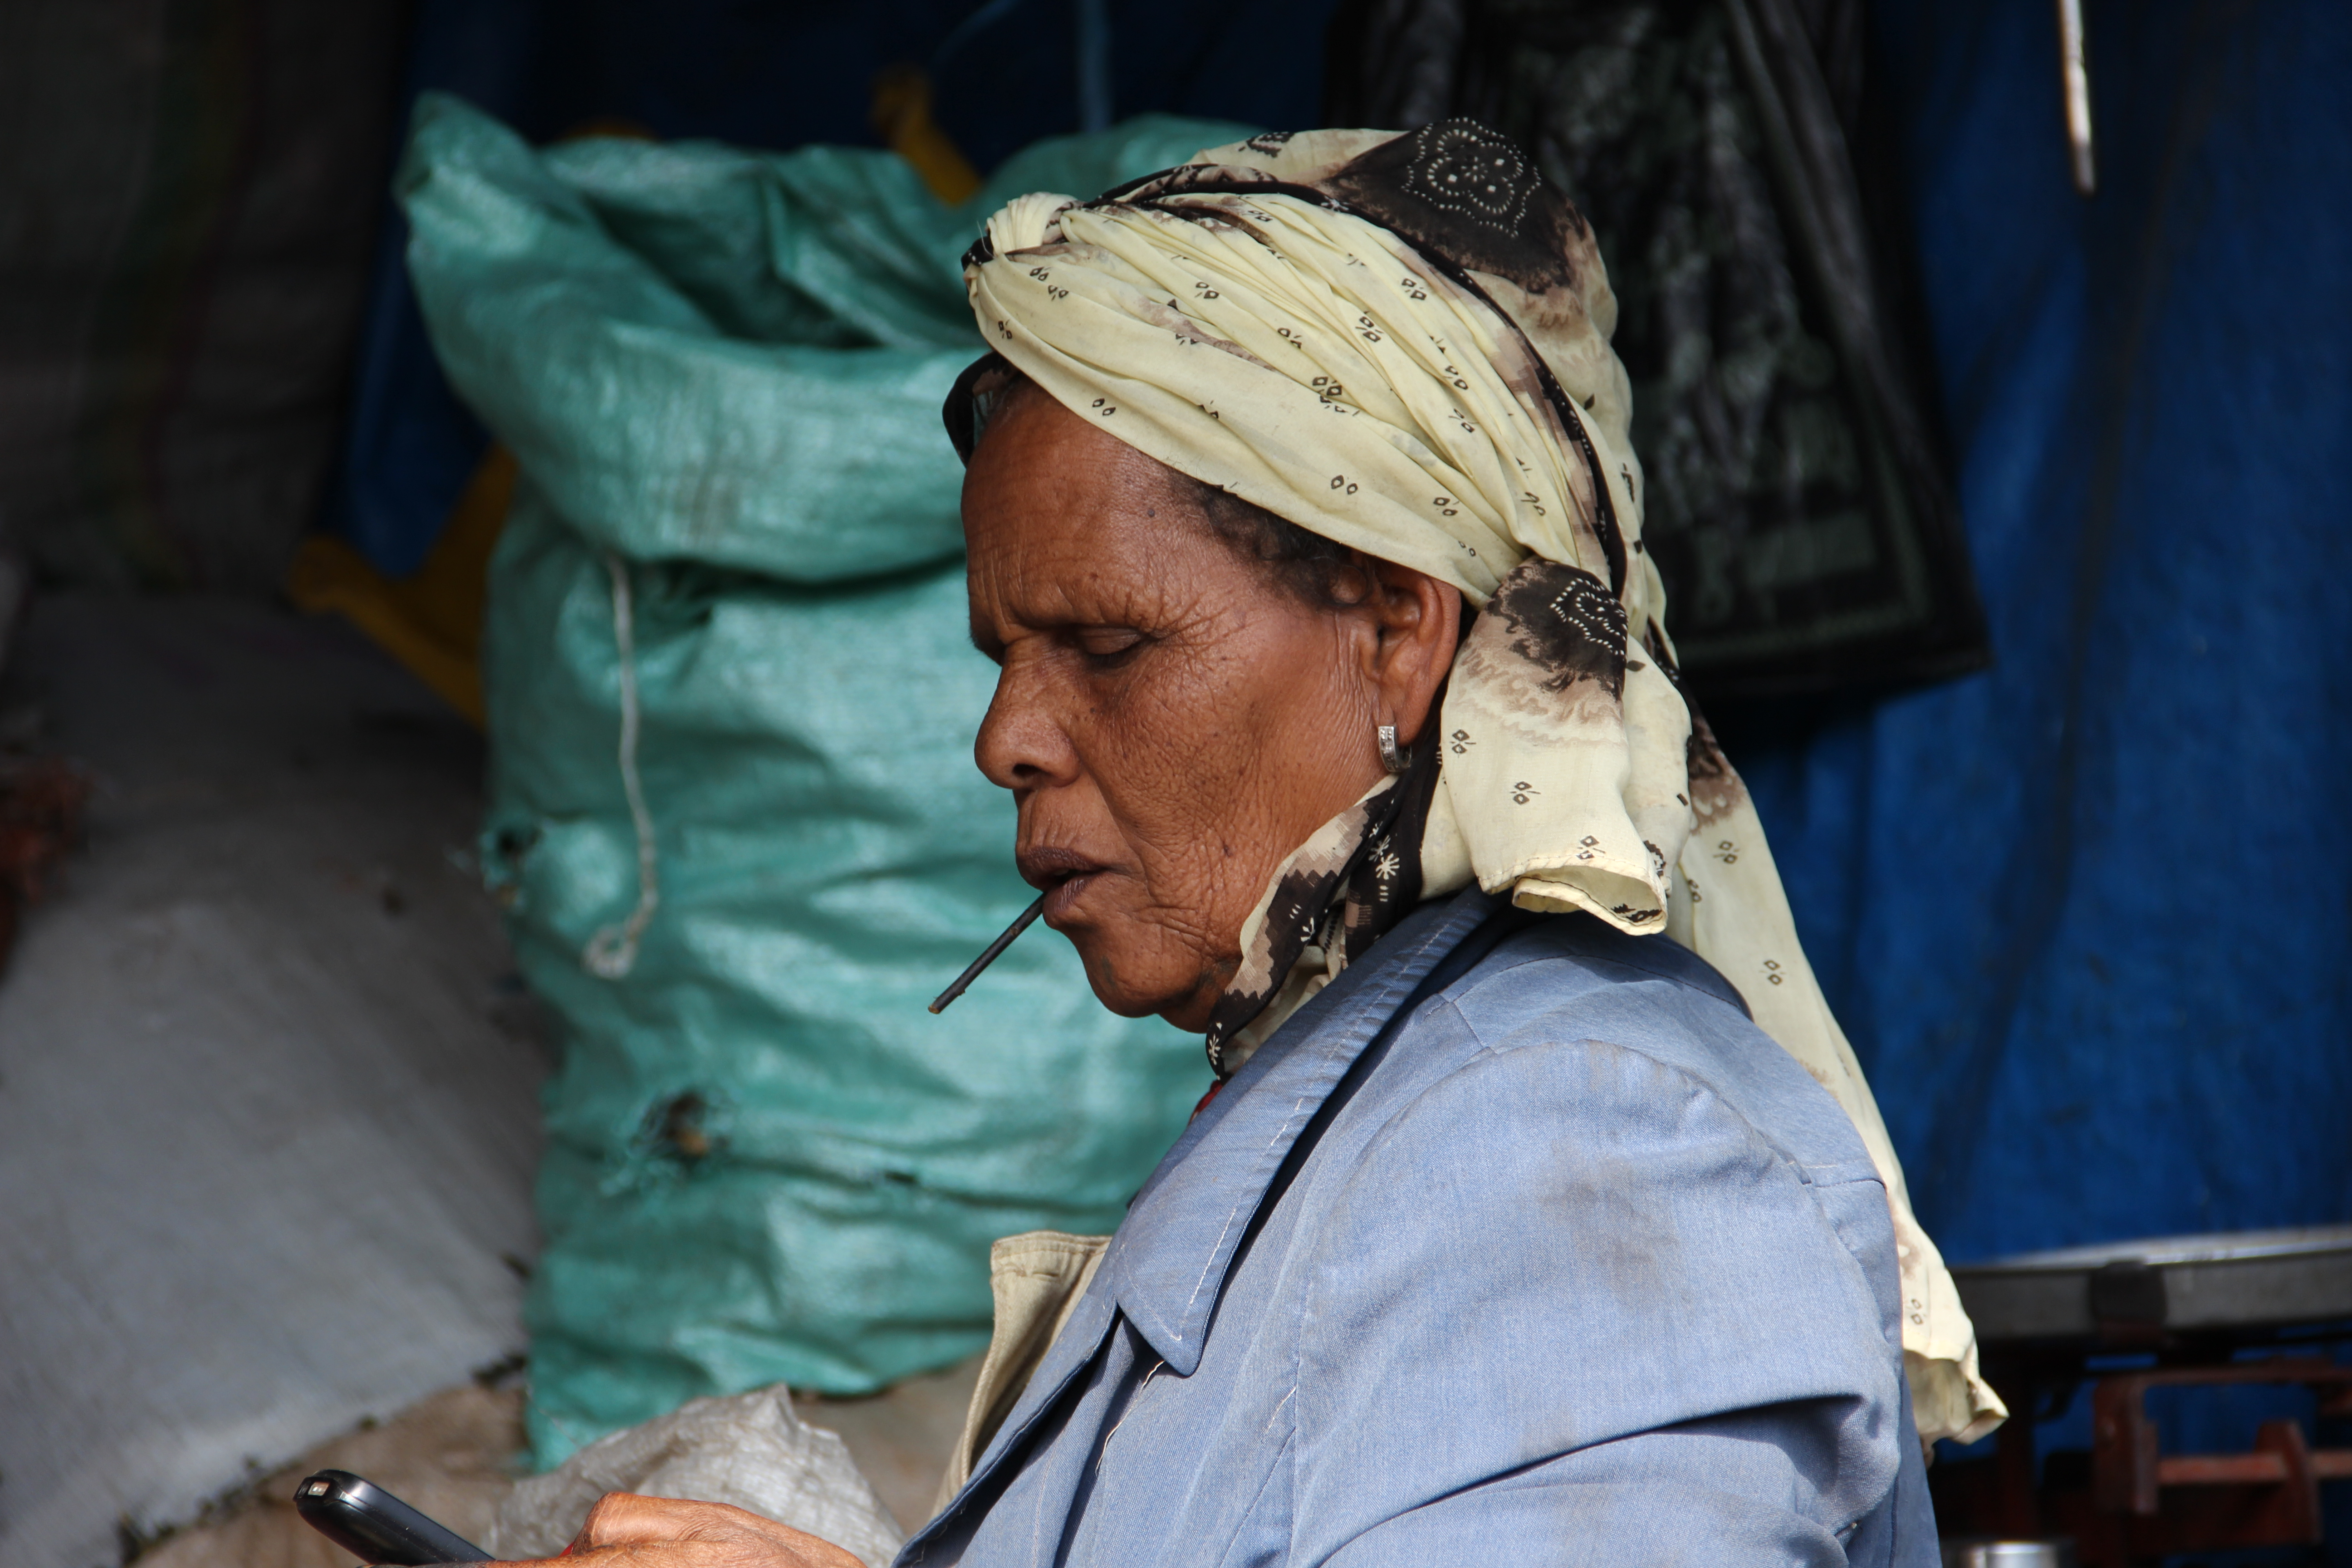 Ethiopian market woman checking her cell phone.